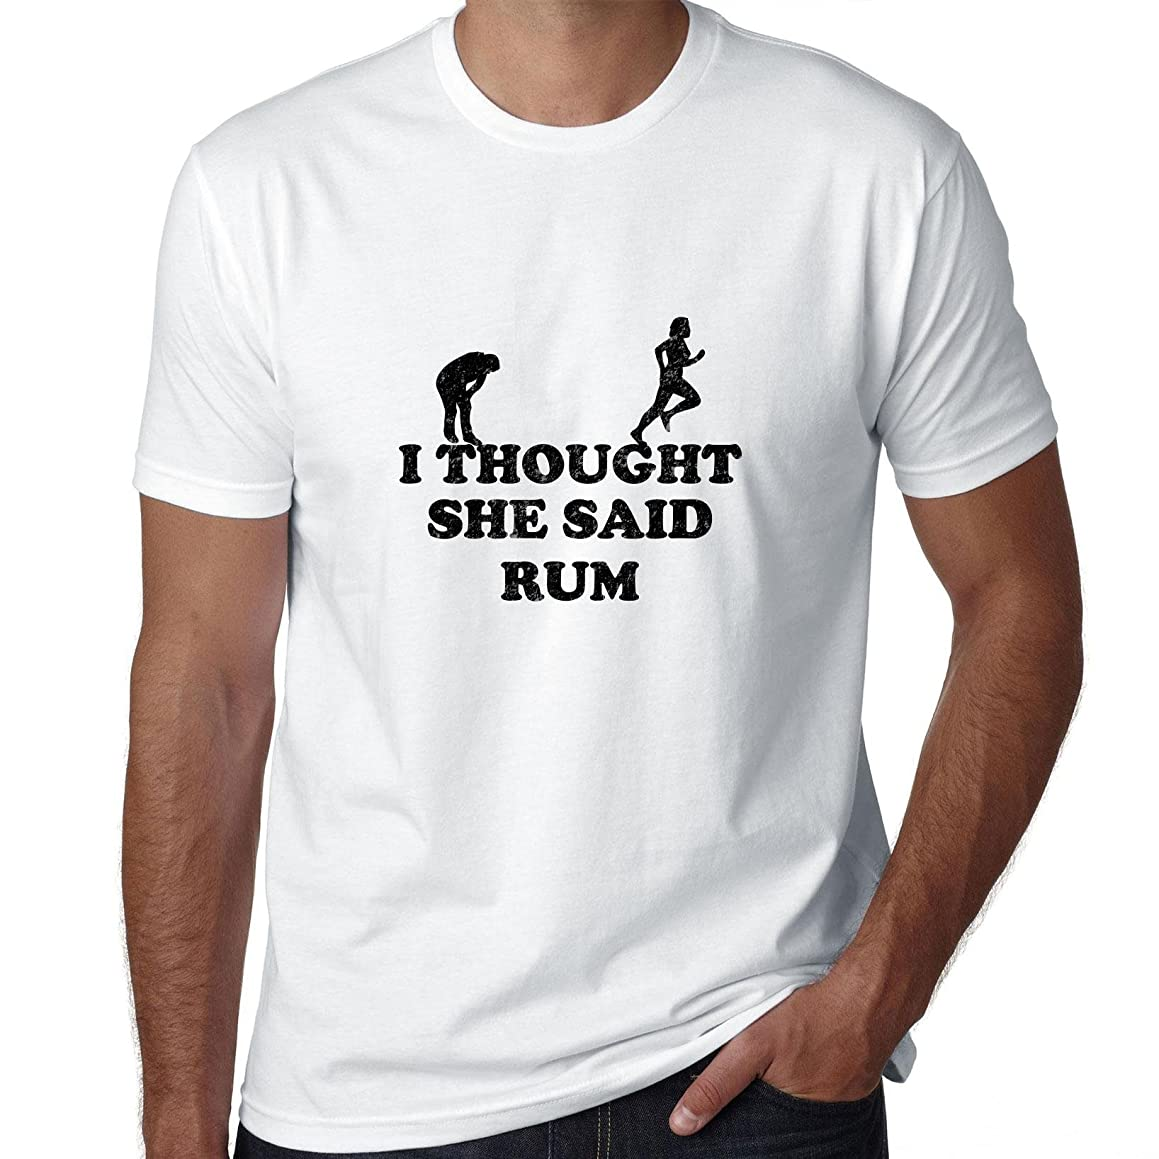 I Thought She Said Rum - Hilarious Running Graphic Men's T-Shirt